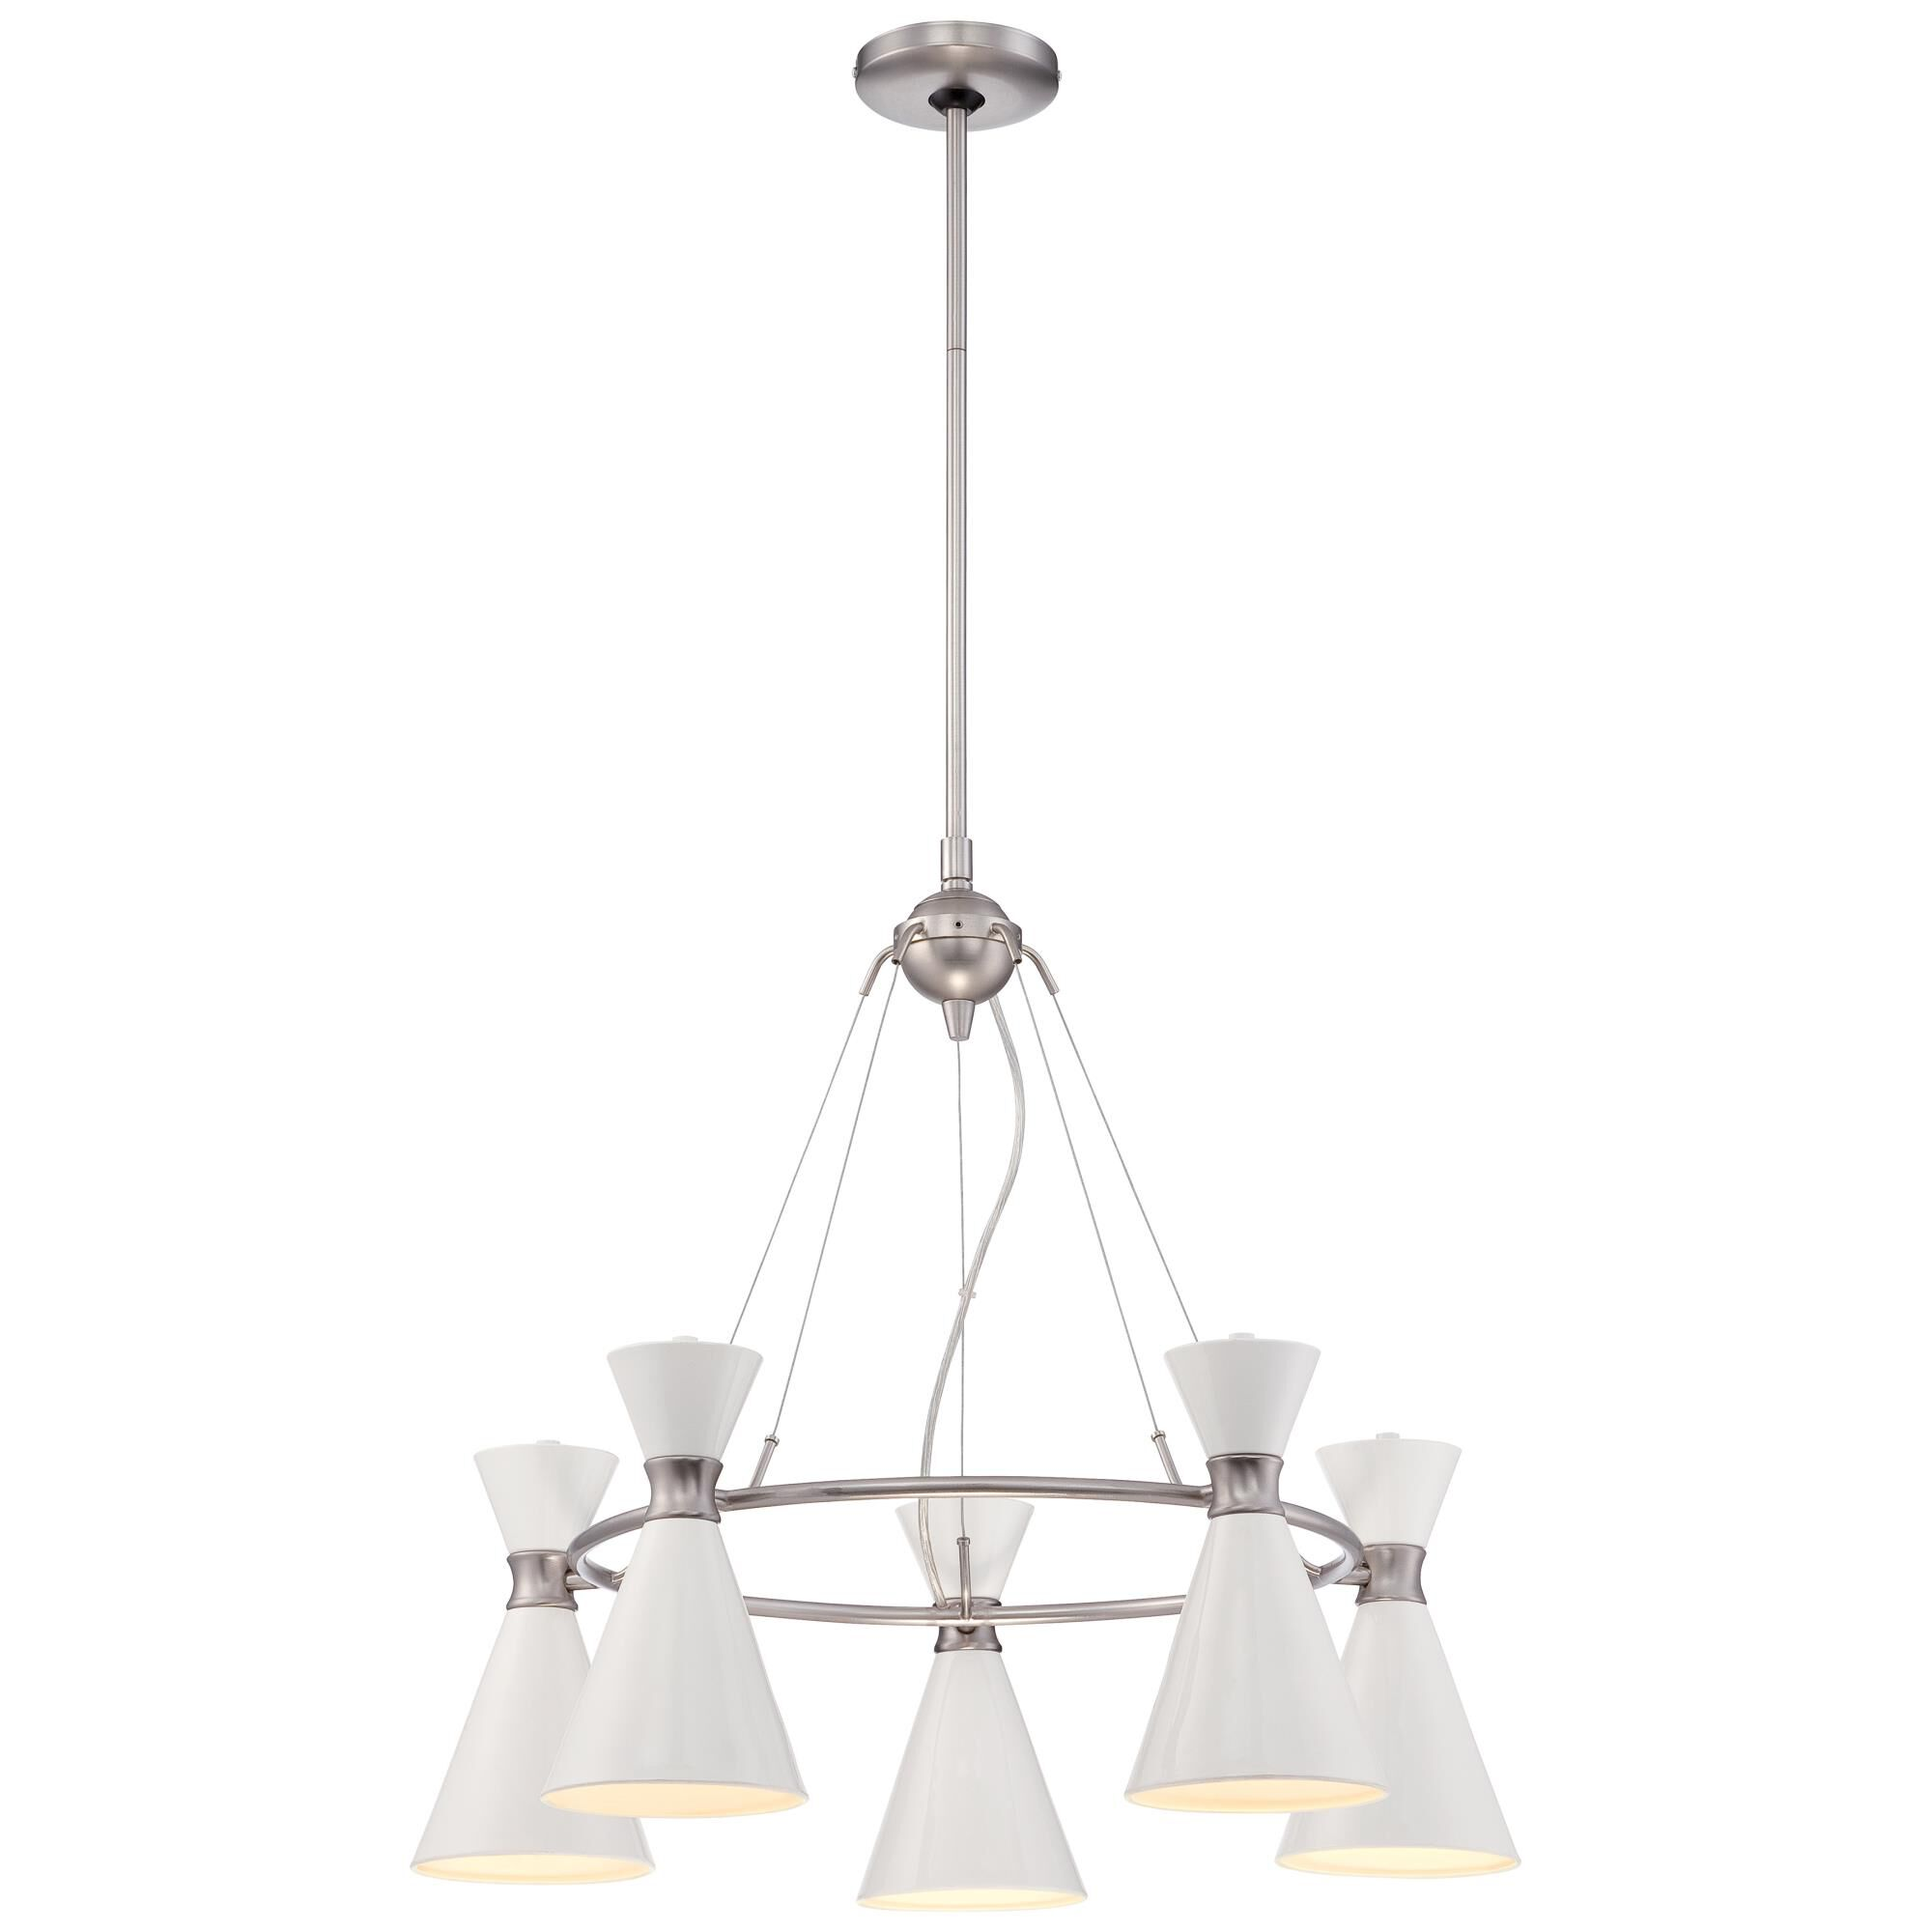 Kovacs Conic 26 Inch 5 Light Chandelier Conic - P1825-44f - Transitional